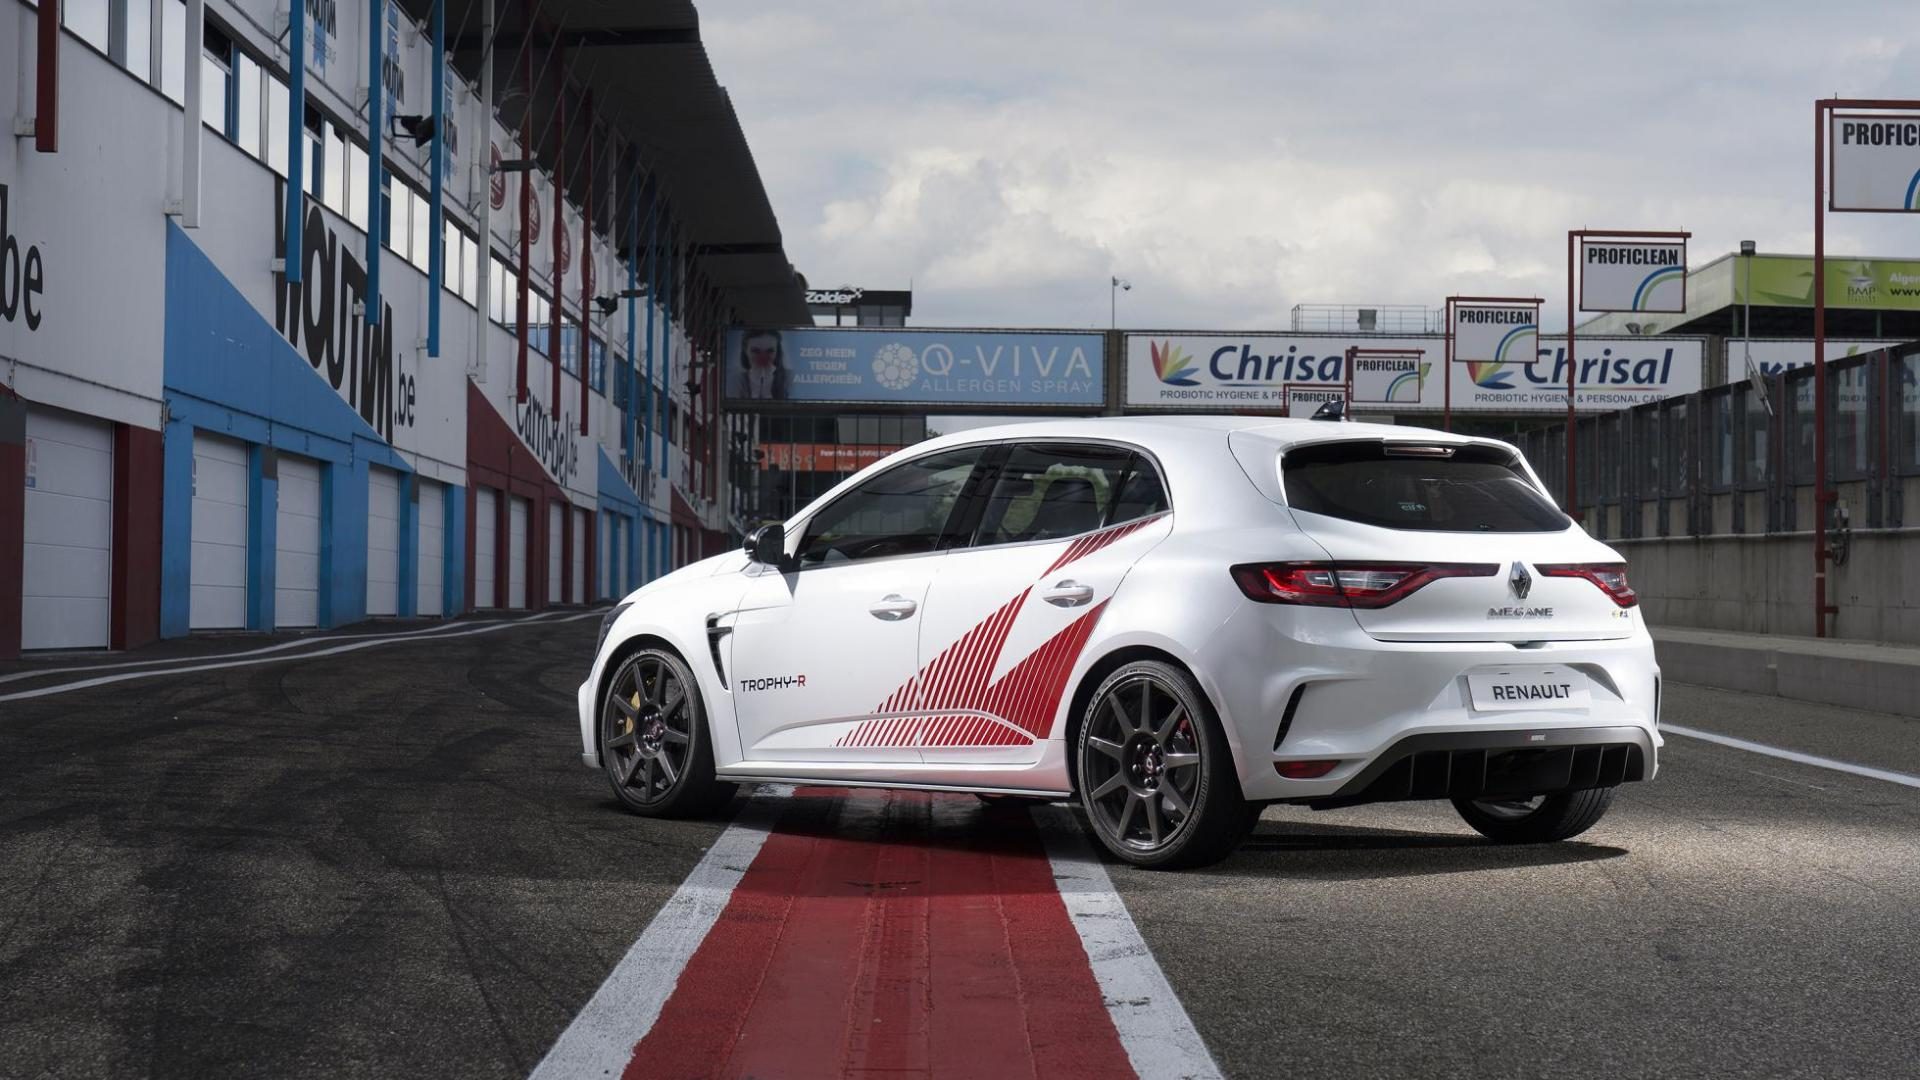 Renault Mégane RS Trophy-R drie kwart links achter in pits